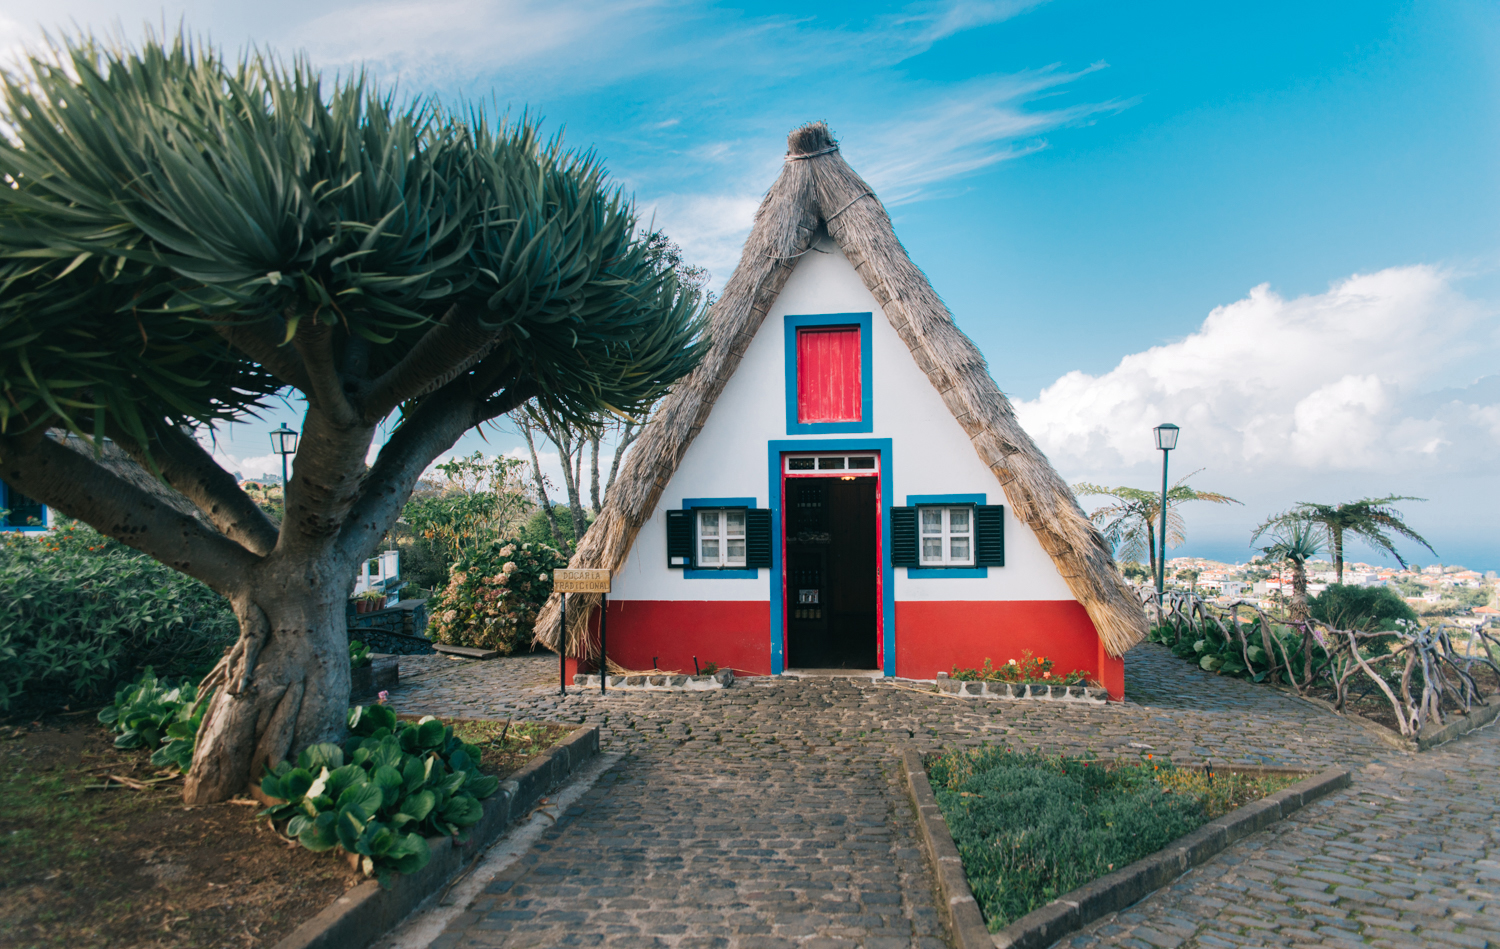 Santana Traditional House in Madeira